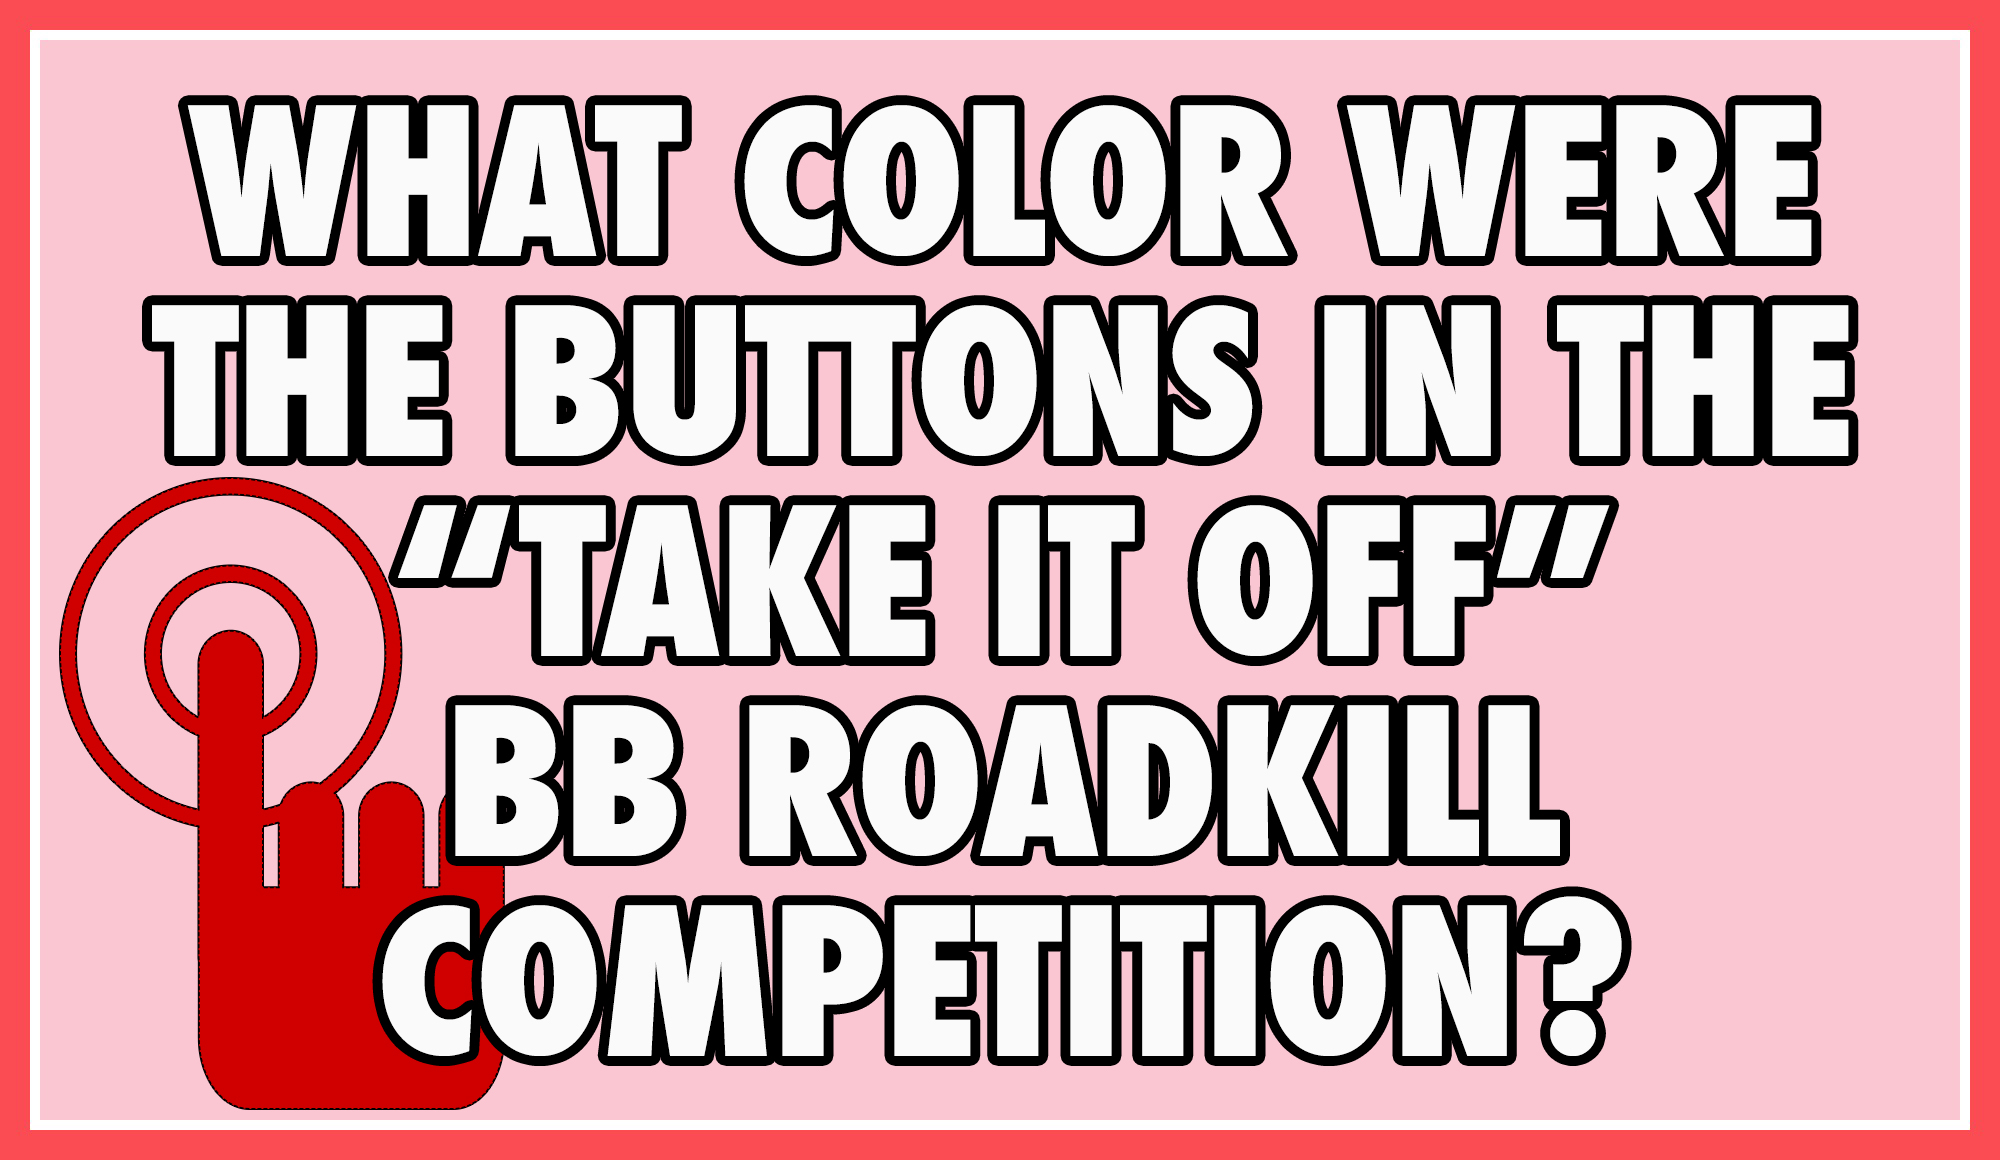 What color were the buttons in the